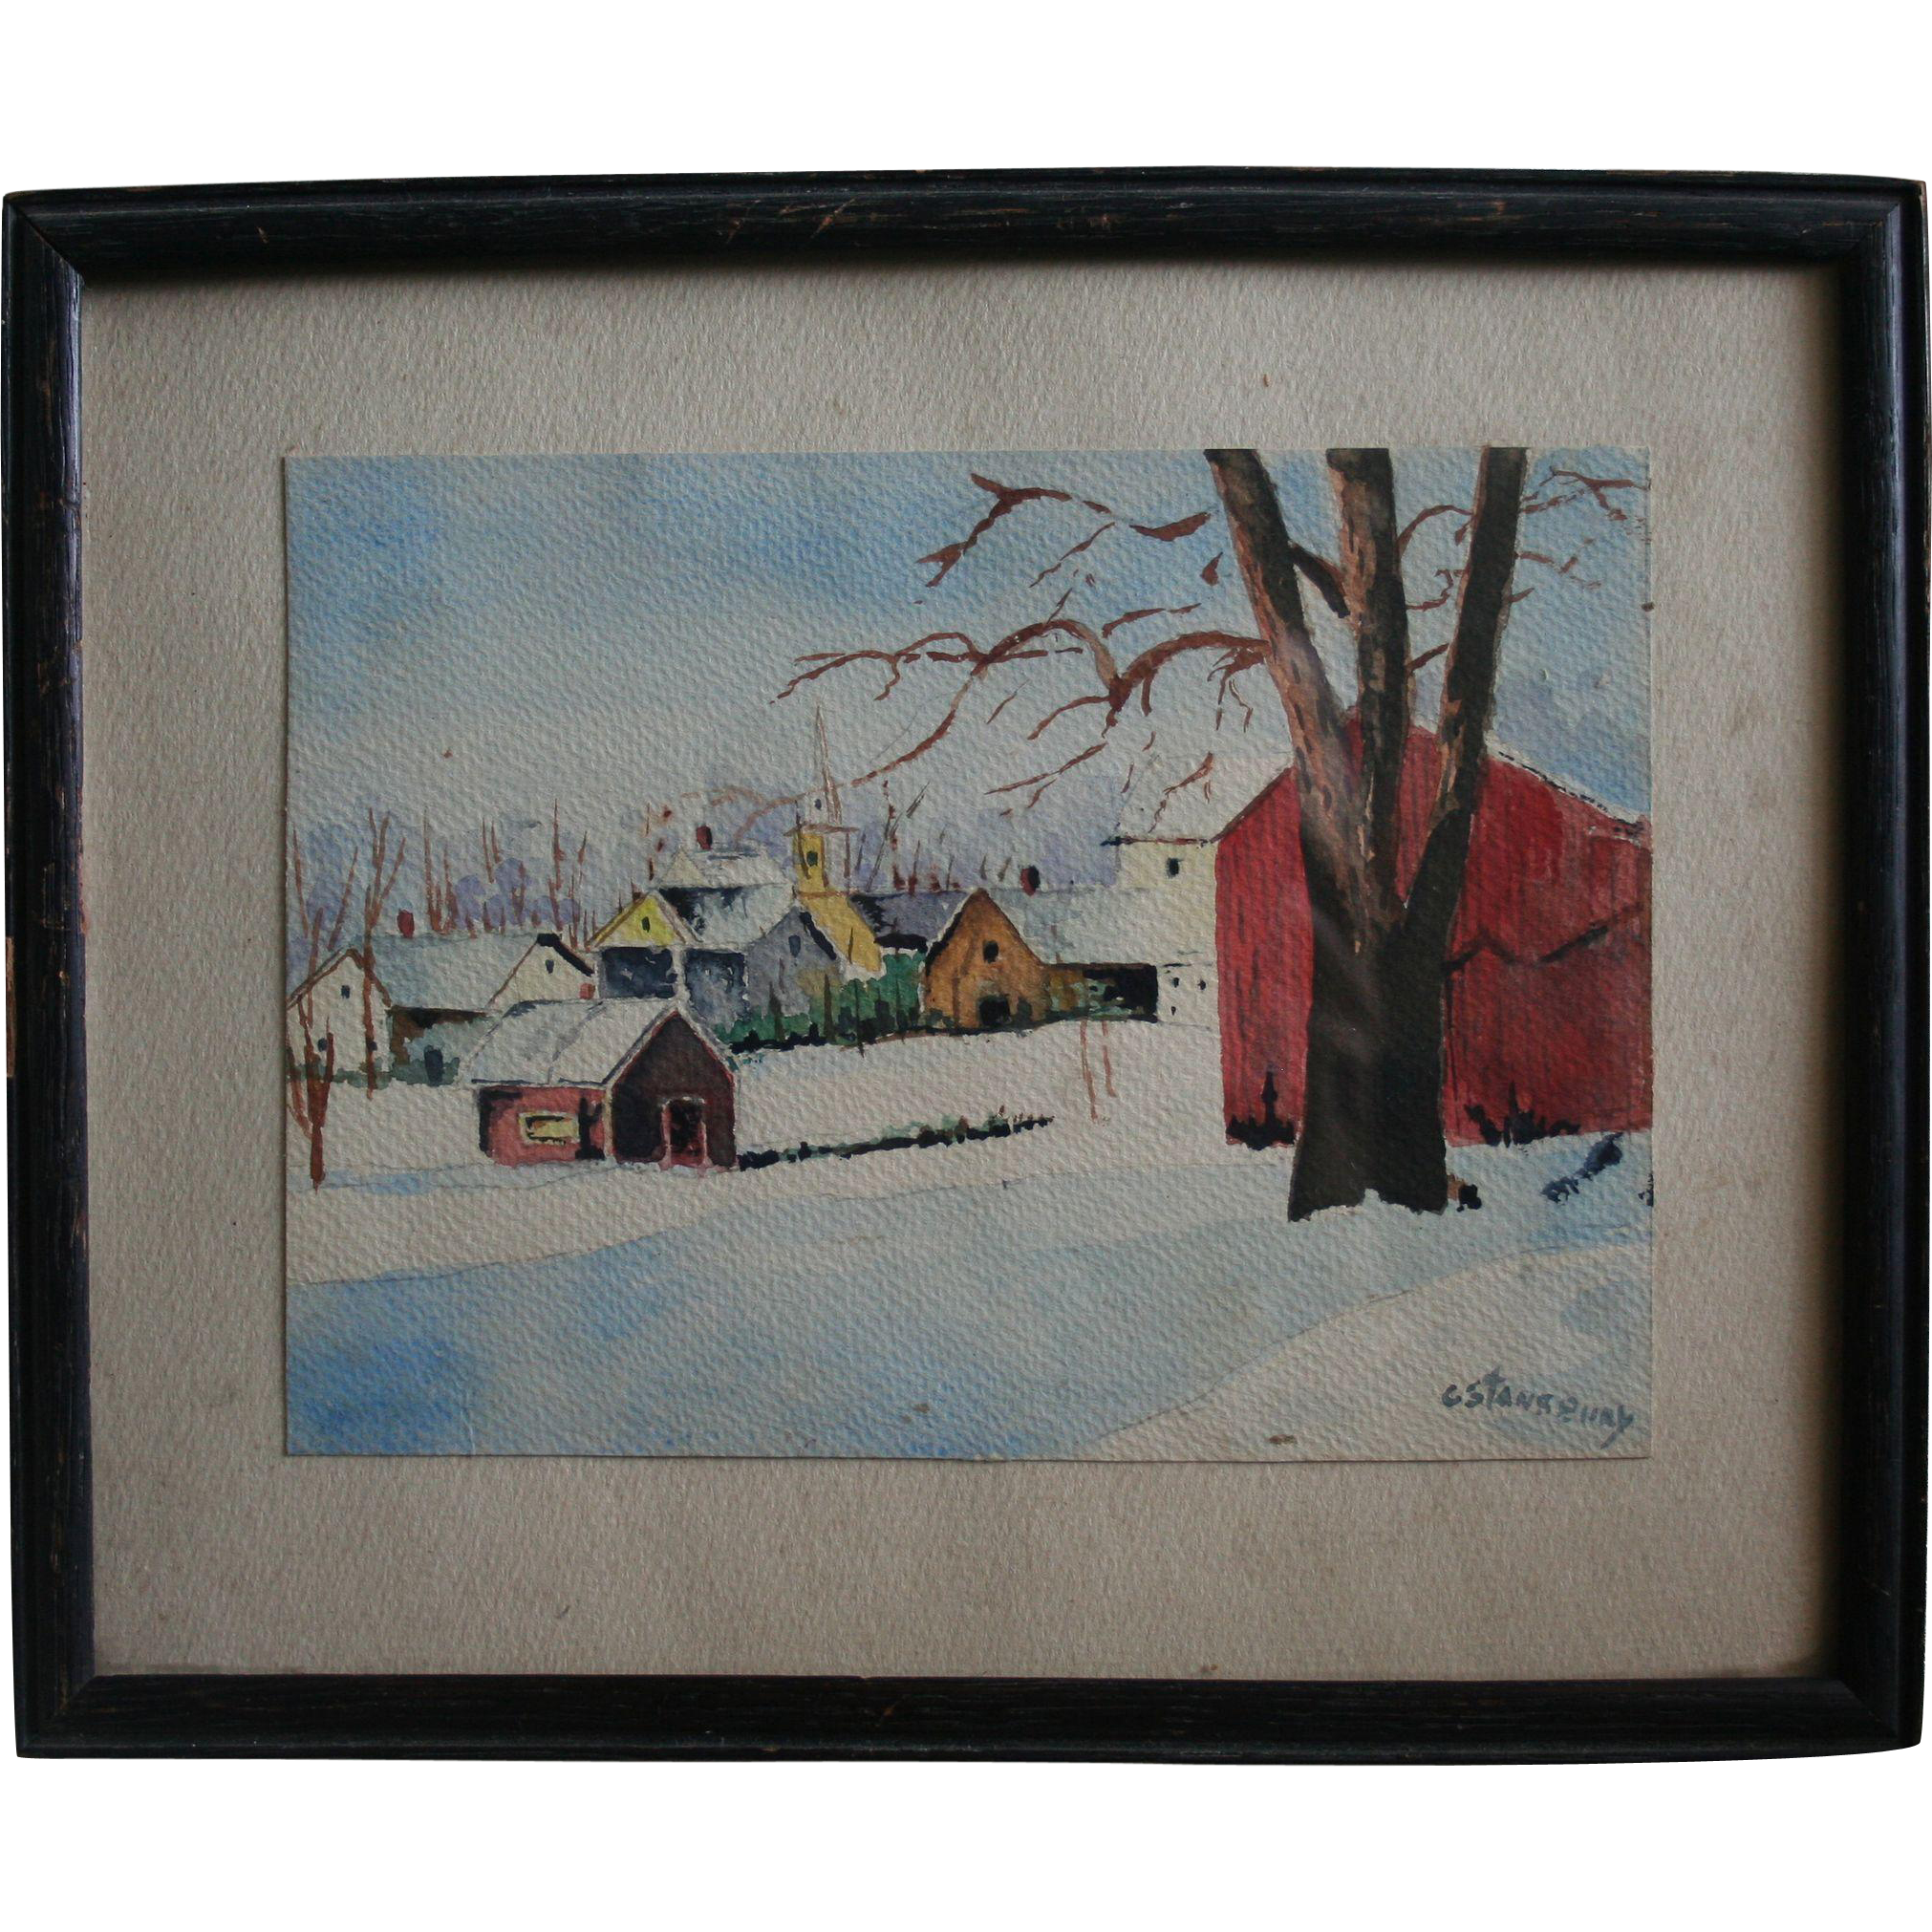 Watercolor artists directory wiki - Kansas Artist Grace Bilger Stansbury Signed Watercolor Country Winter Landscape